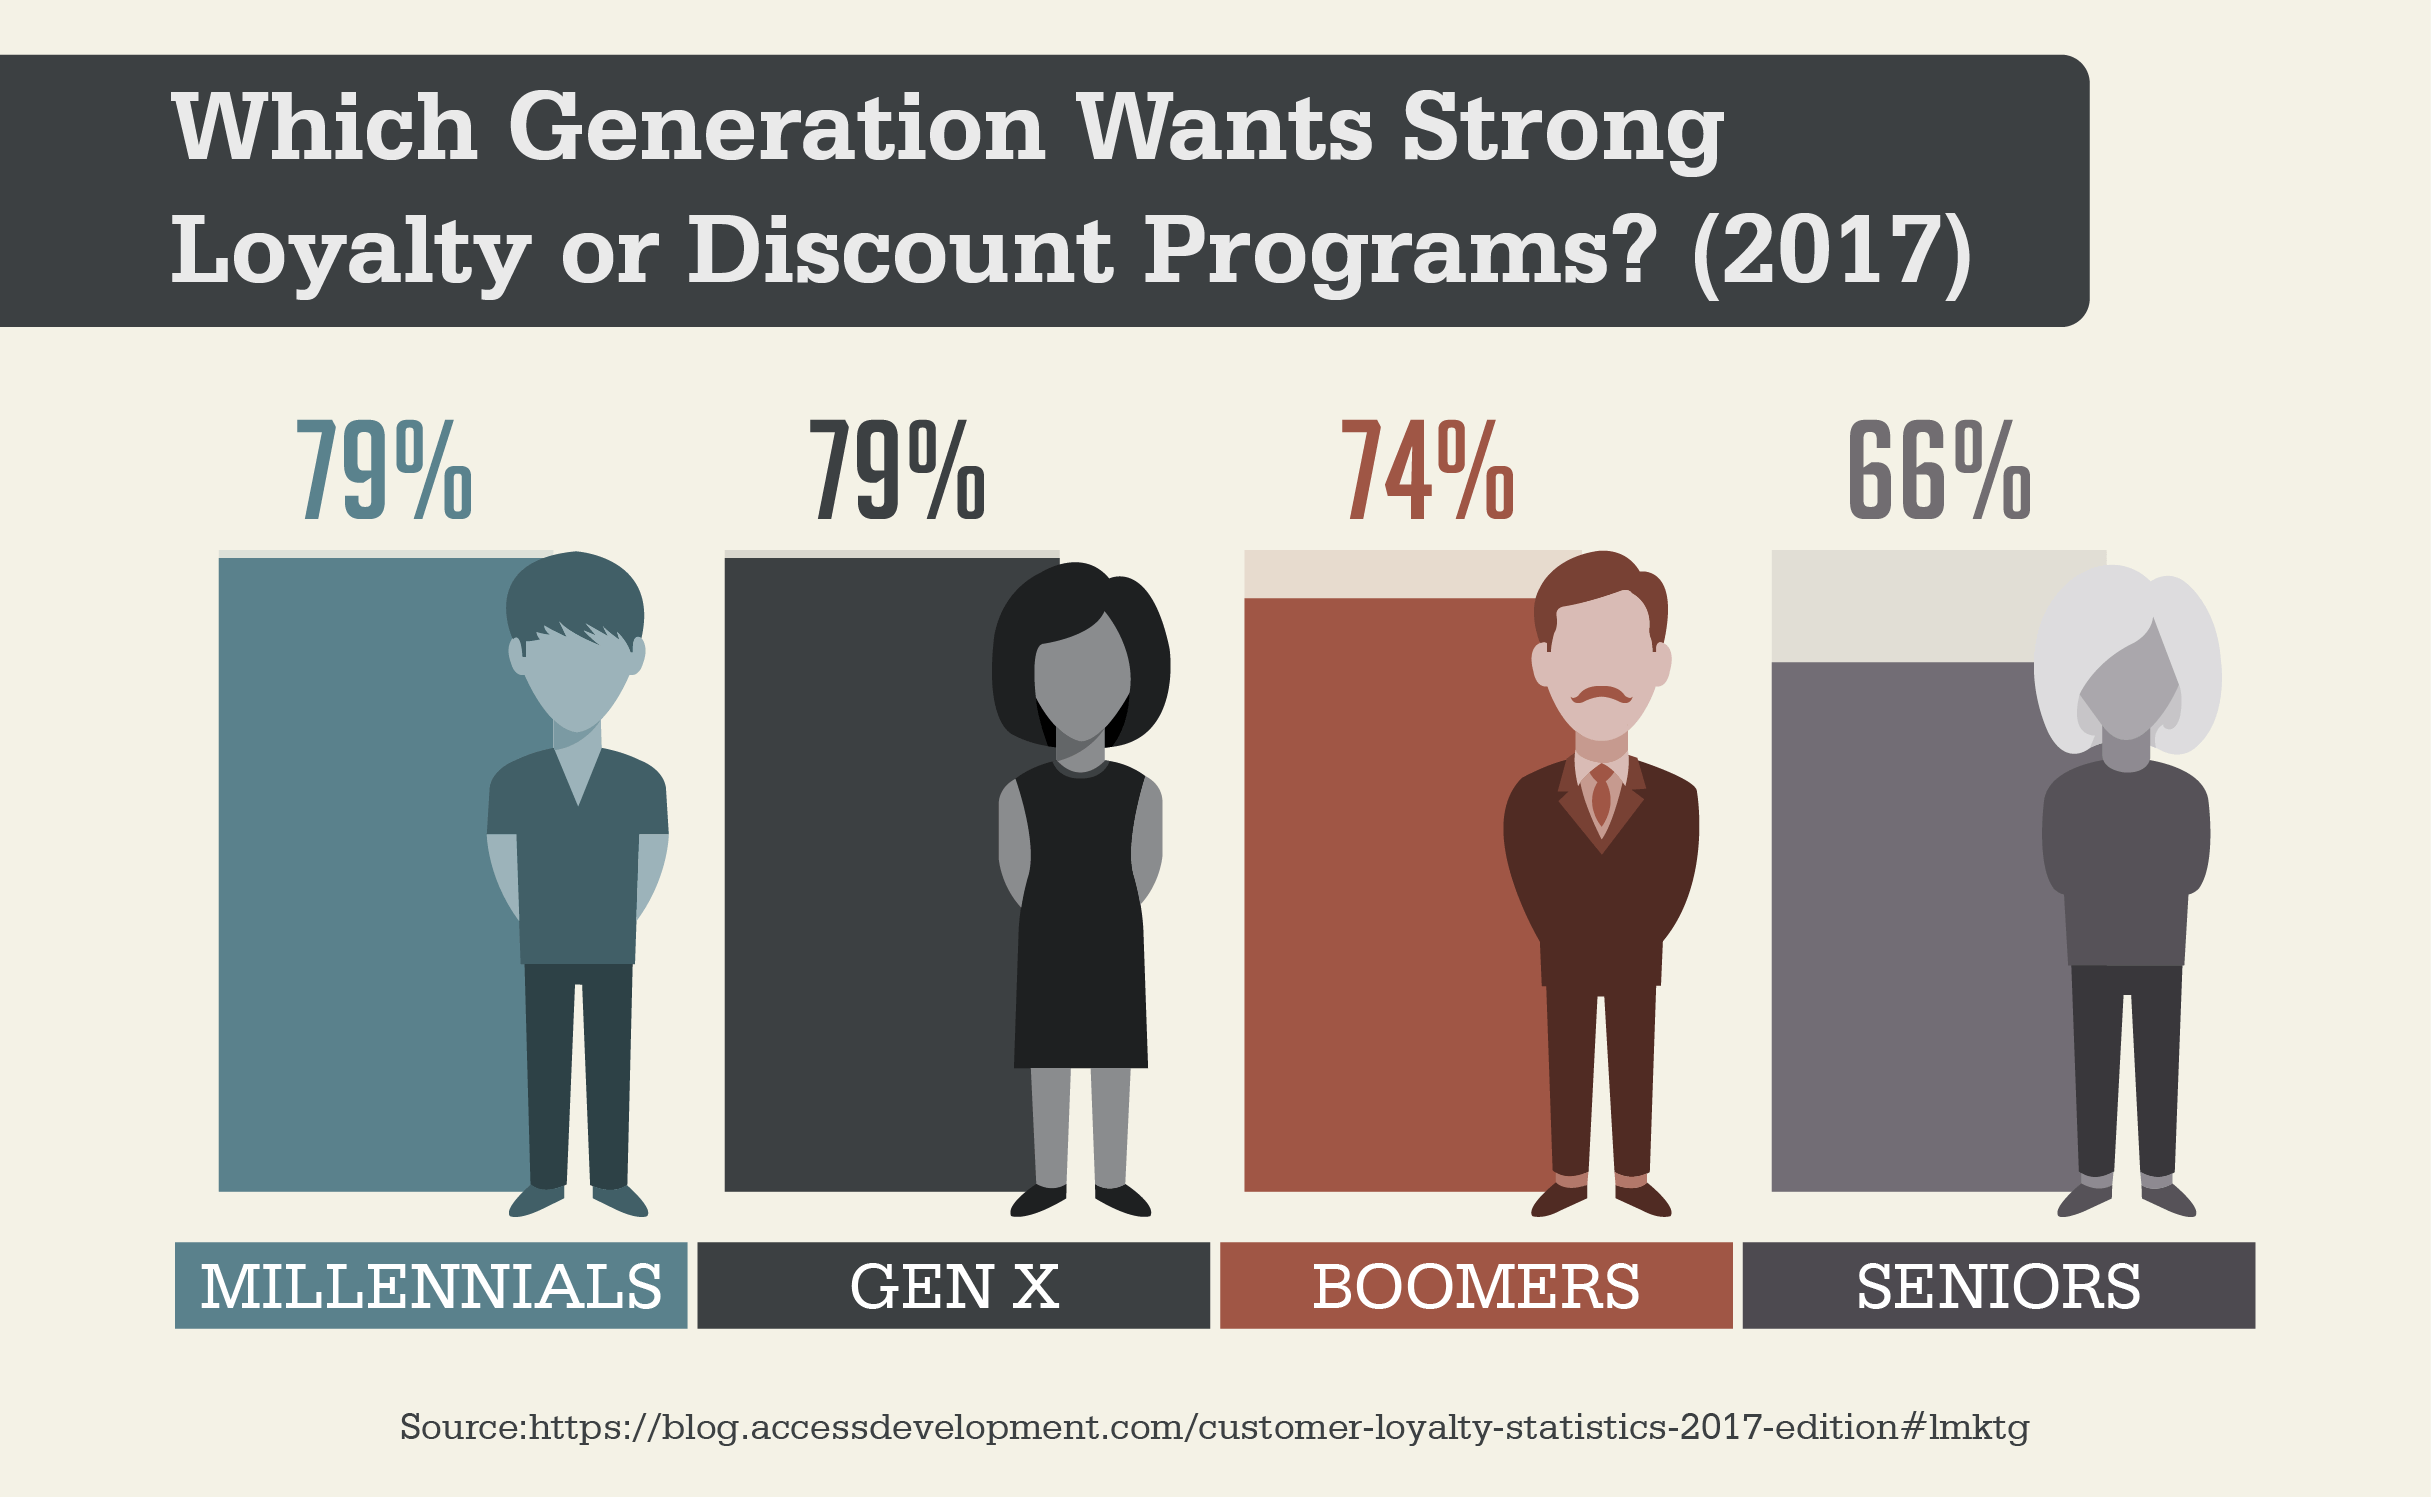 Which Generation Wants Strong Loyalty or Discount Programs? (2017)